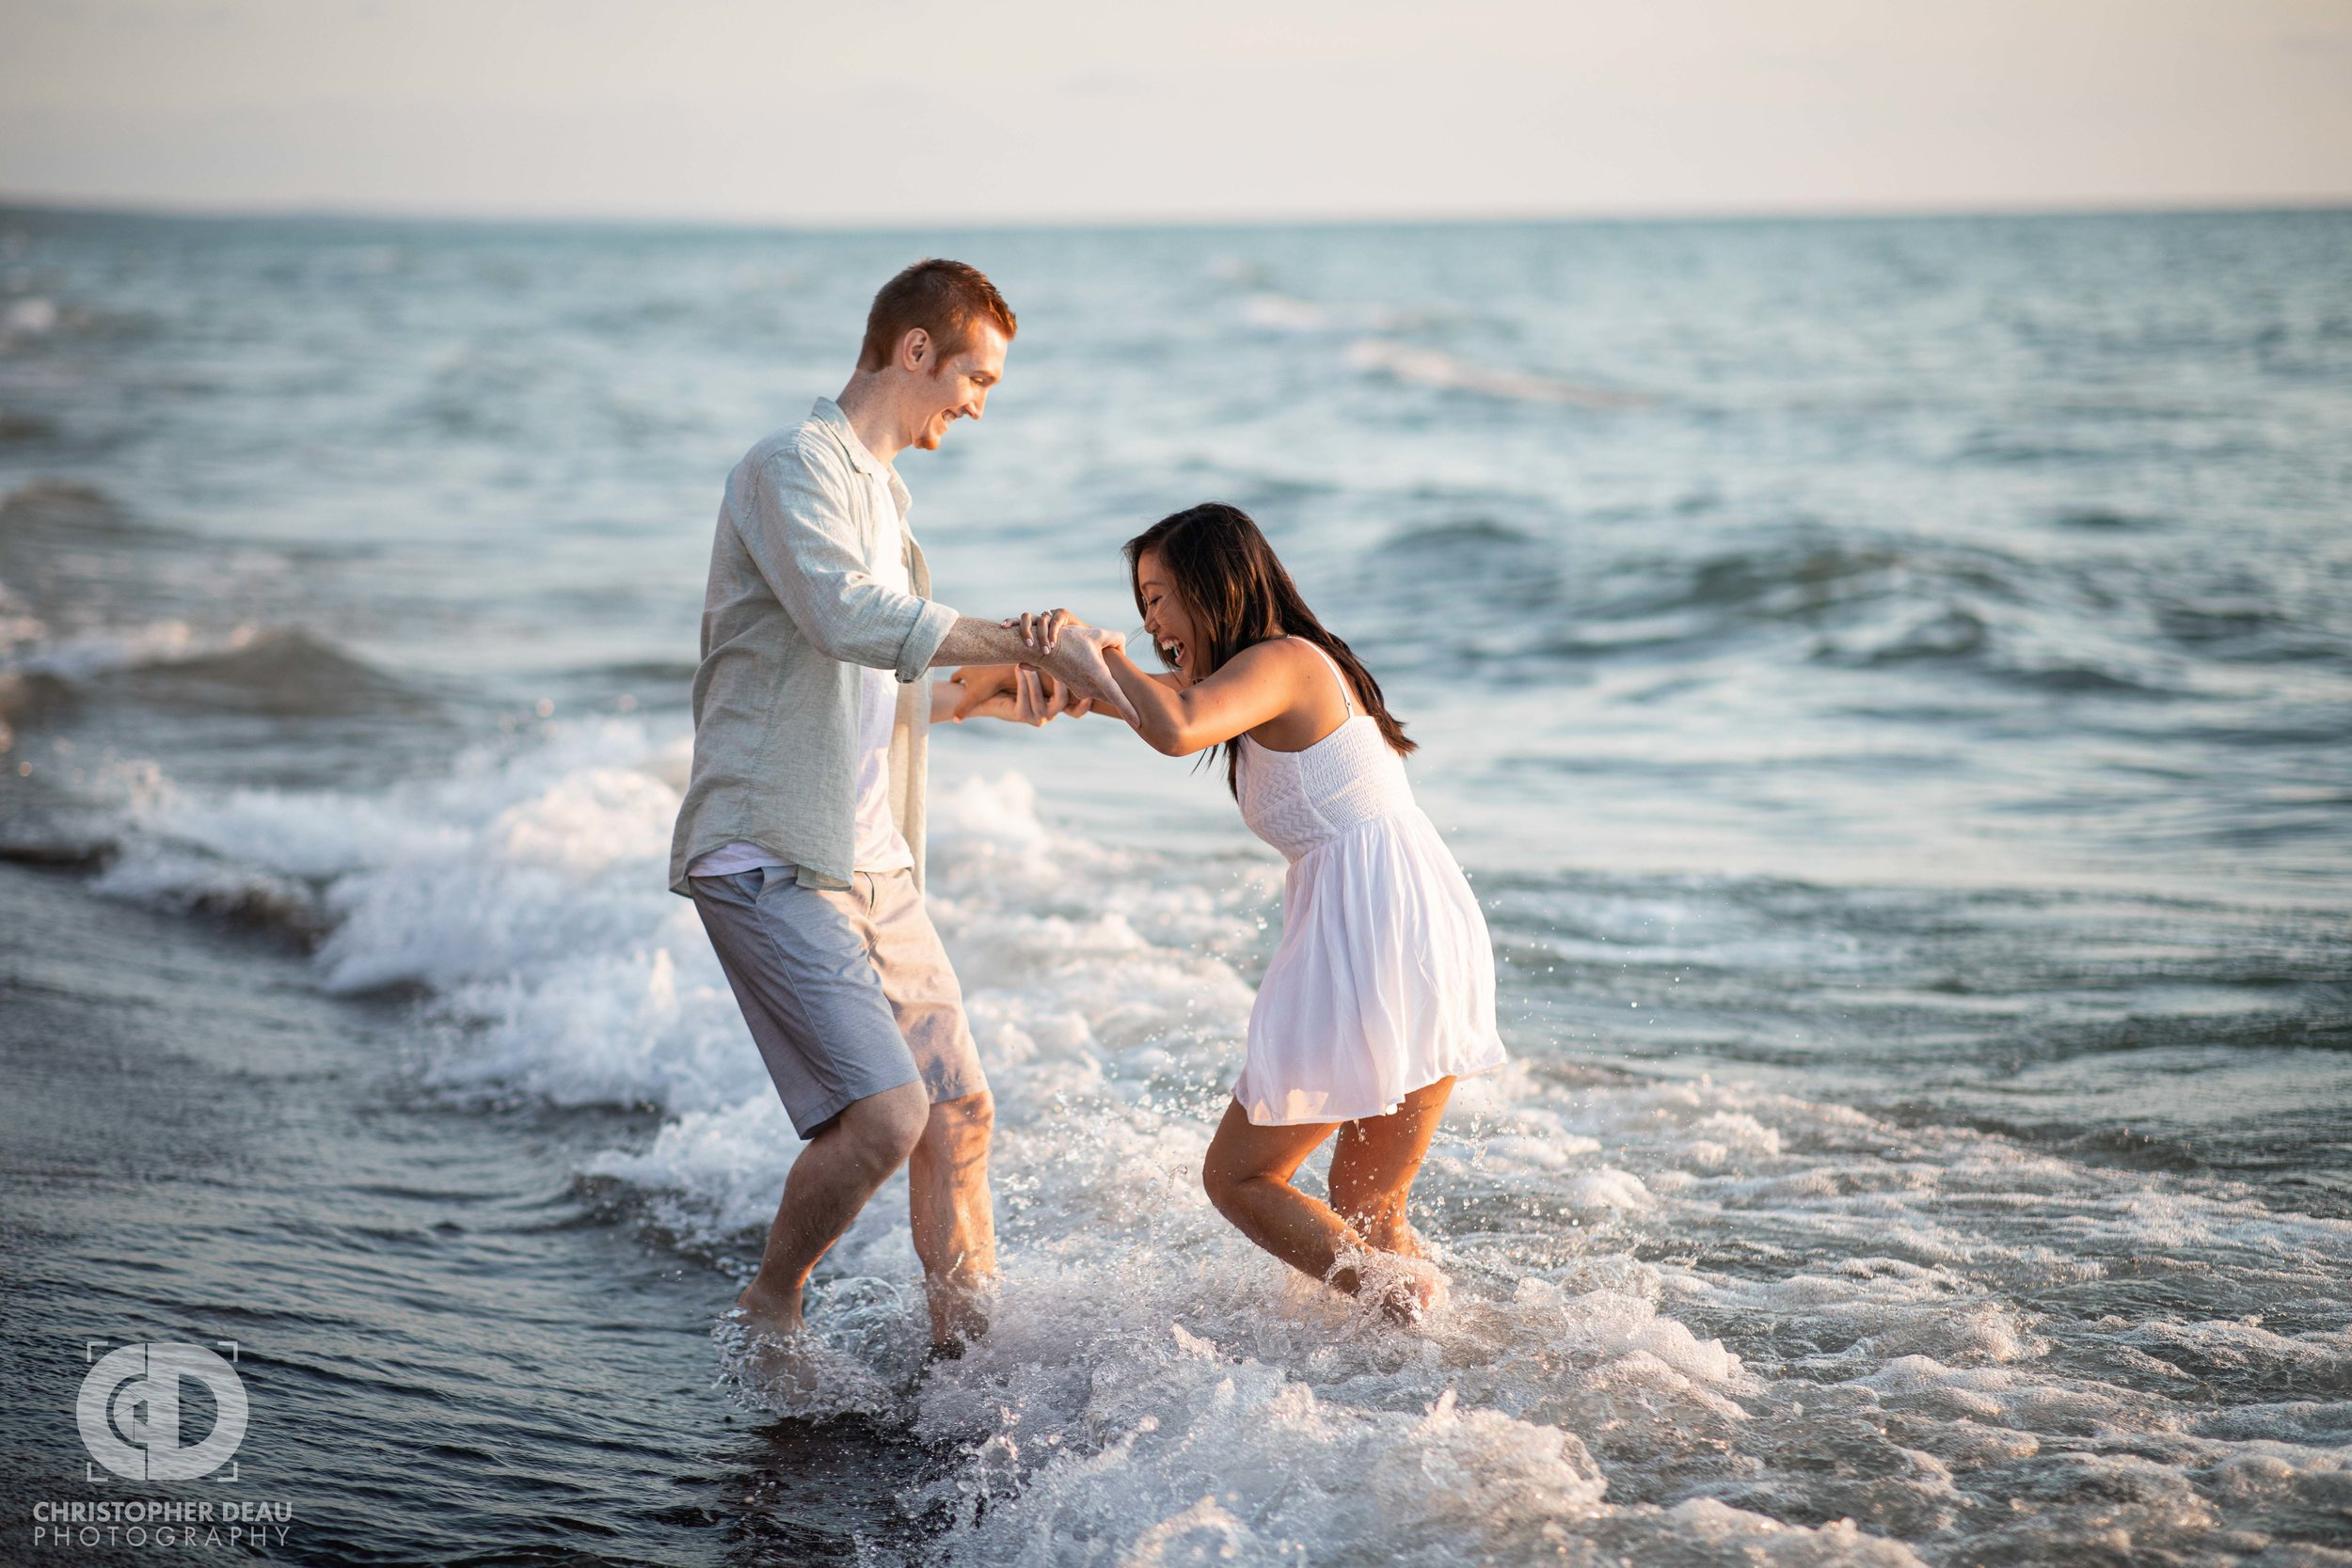 Engagement photo session in the water of Lake Michigan